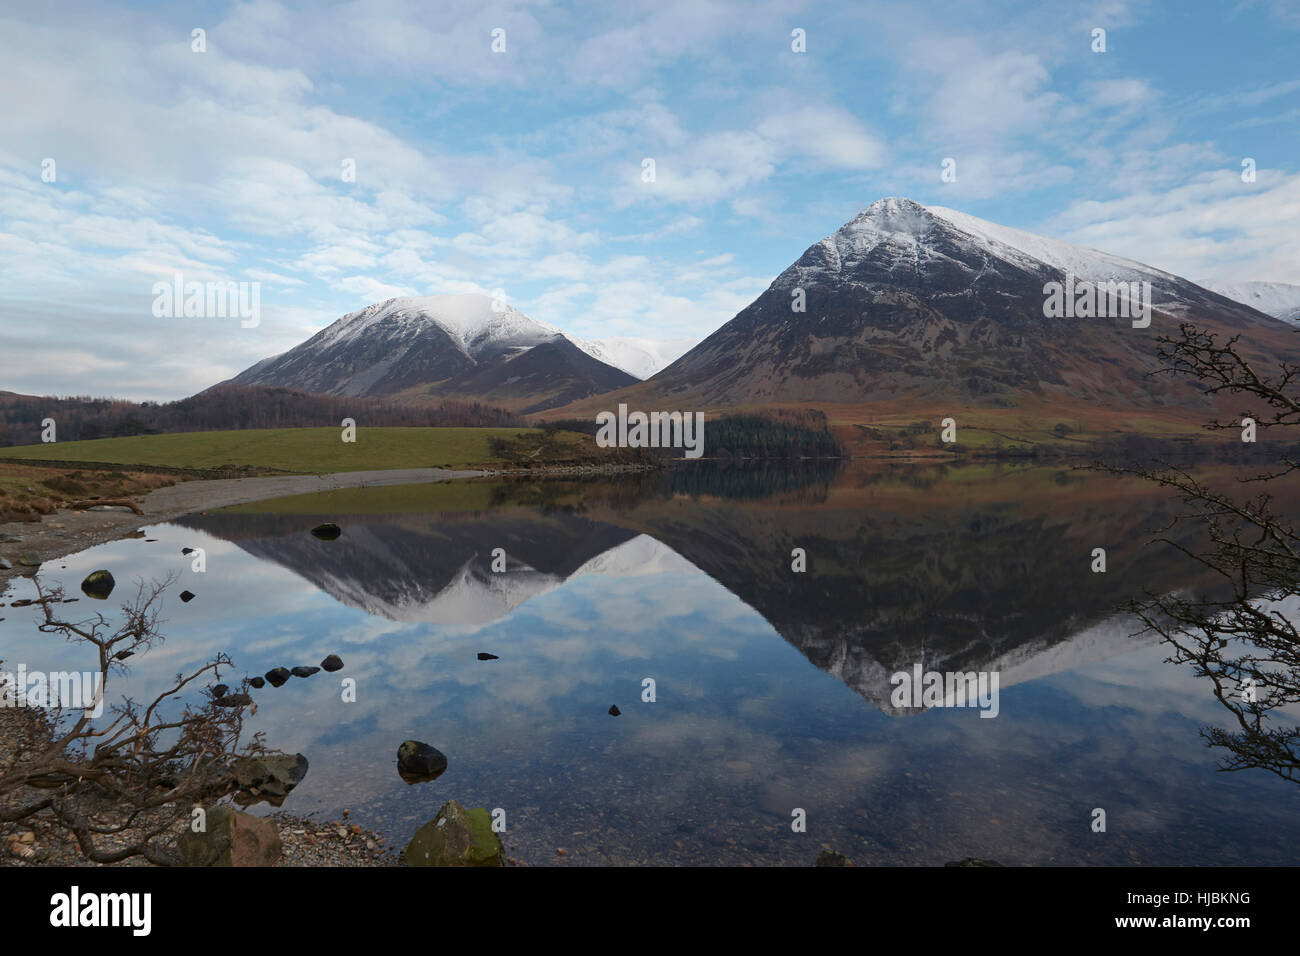 Snow capped mountains, rocks and trees reflected in the calm surface of Crummock Water, Cumbria, Lake District, - Stock Image